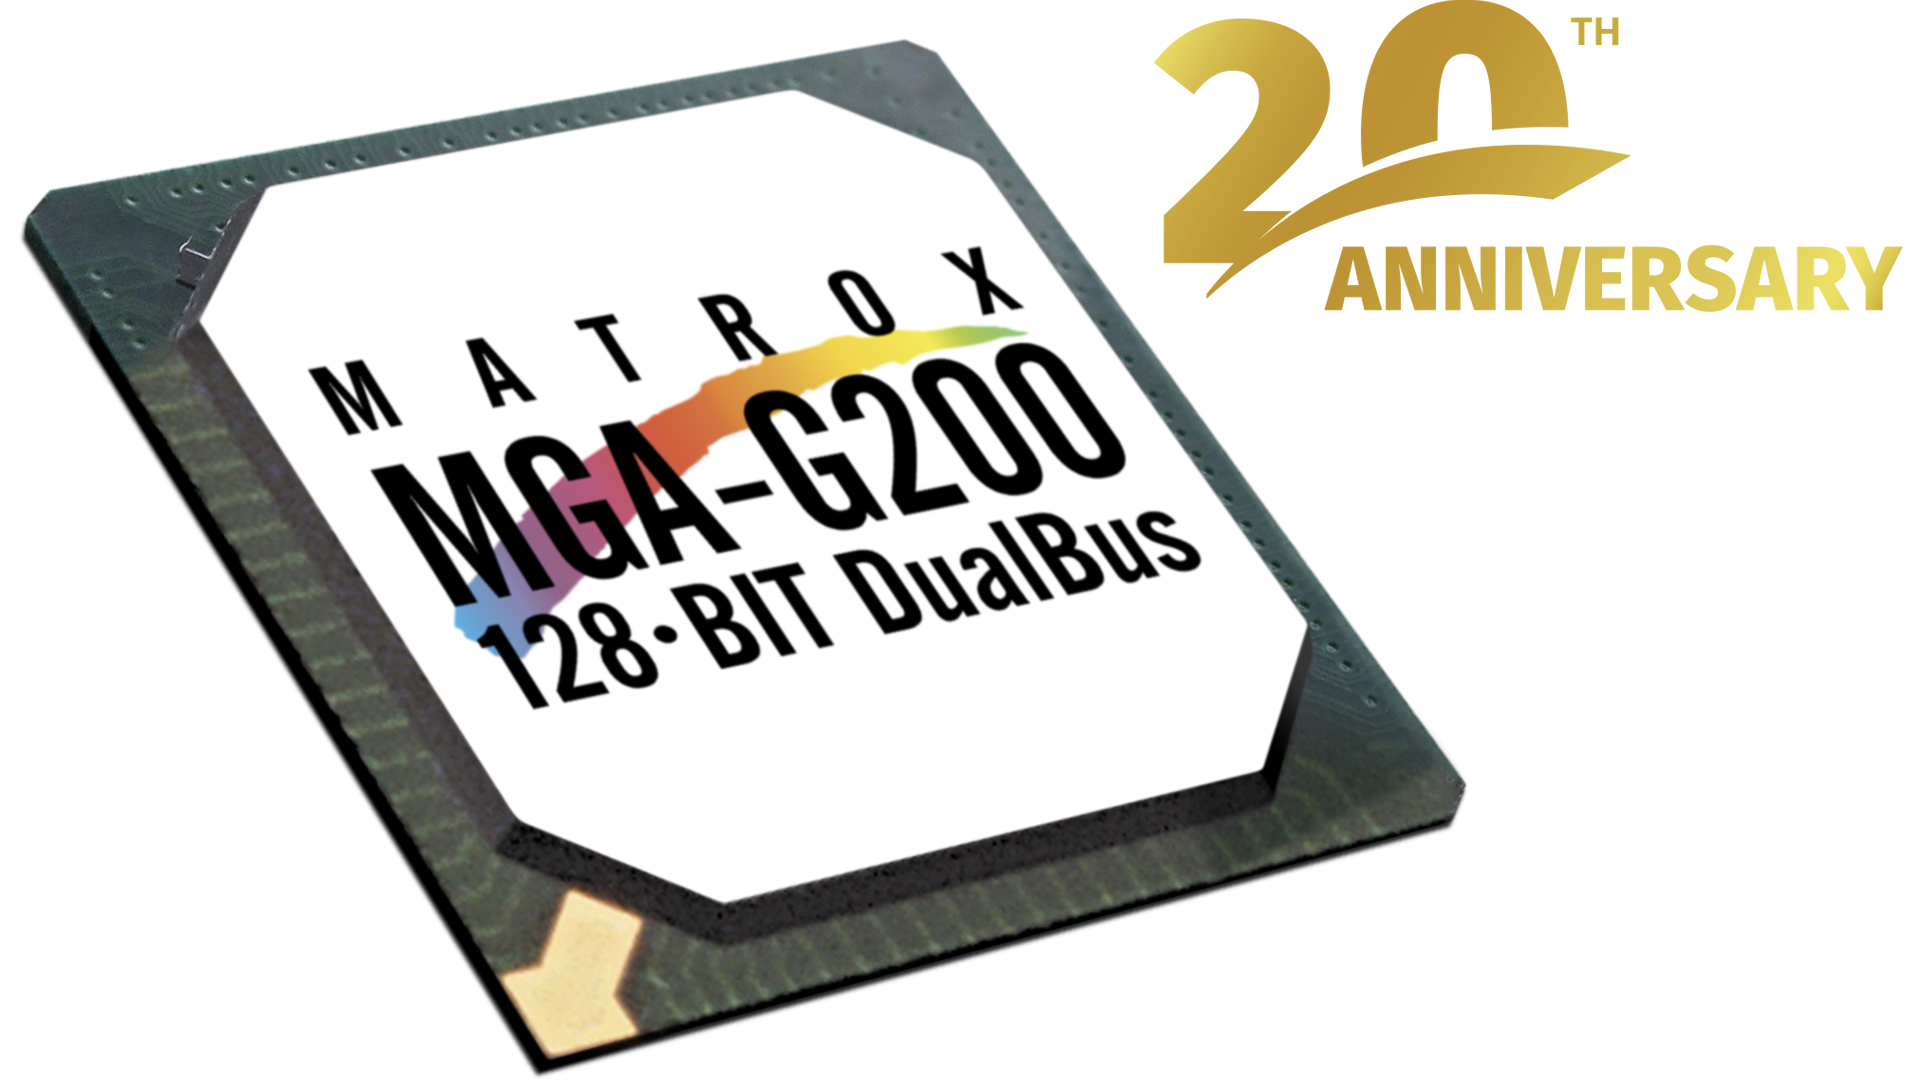 Matrox G200 celebrates two decades of graphics excellence.